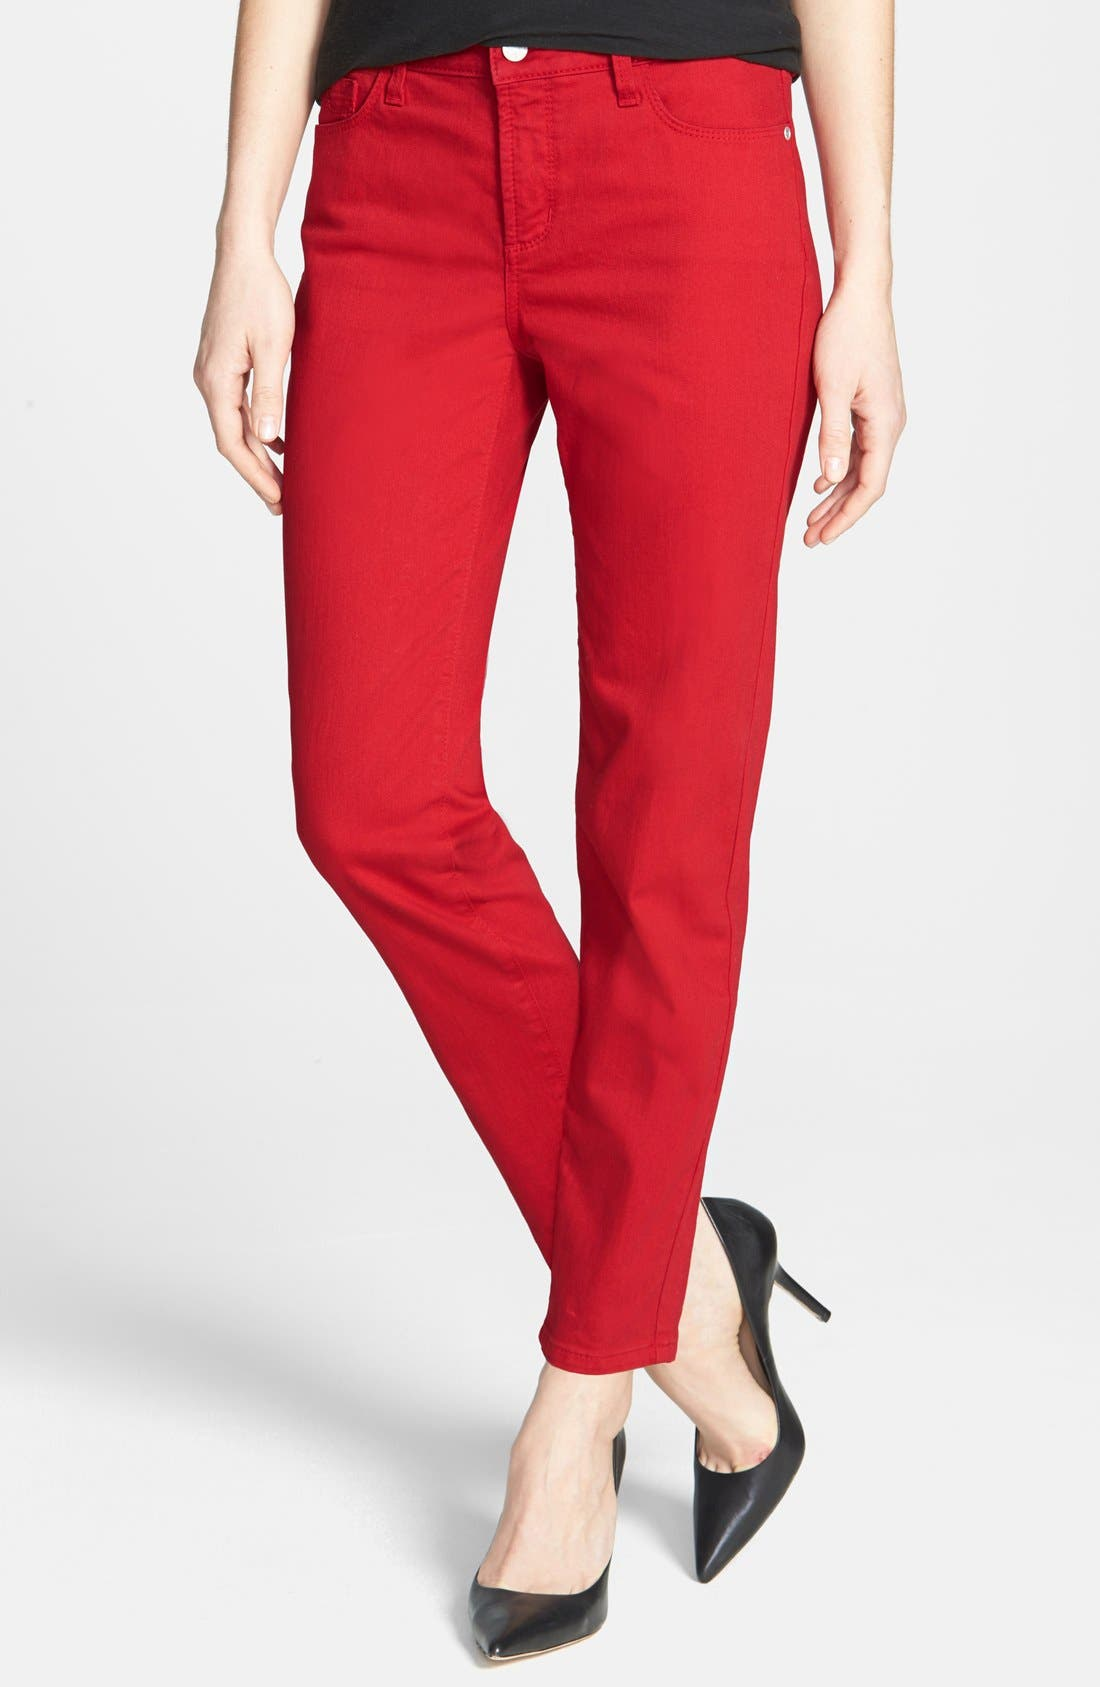 Main Image - NYDJ 'Clarissa' Fitted Stretch Ankle Skinny Jeans (Regular & Petite)